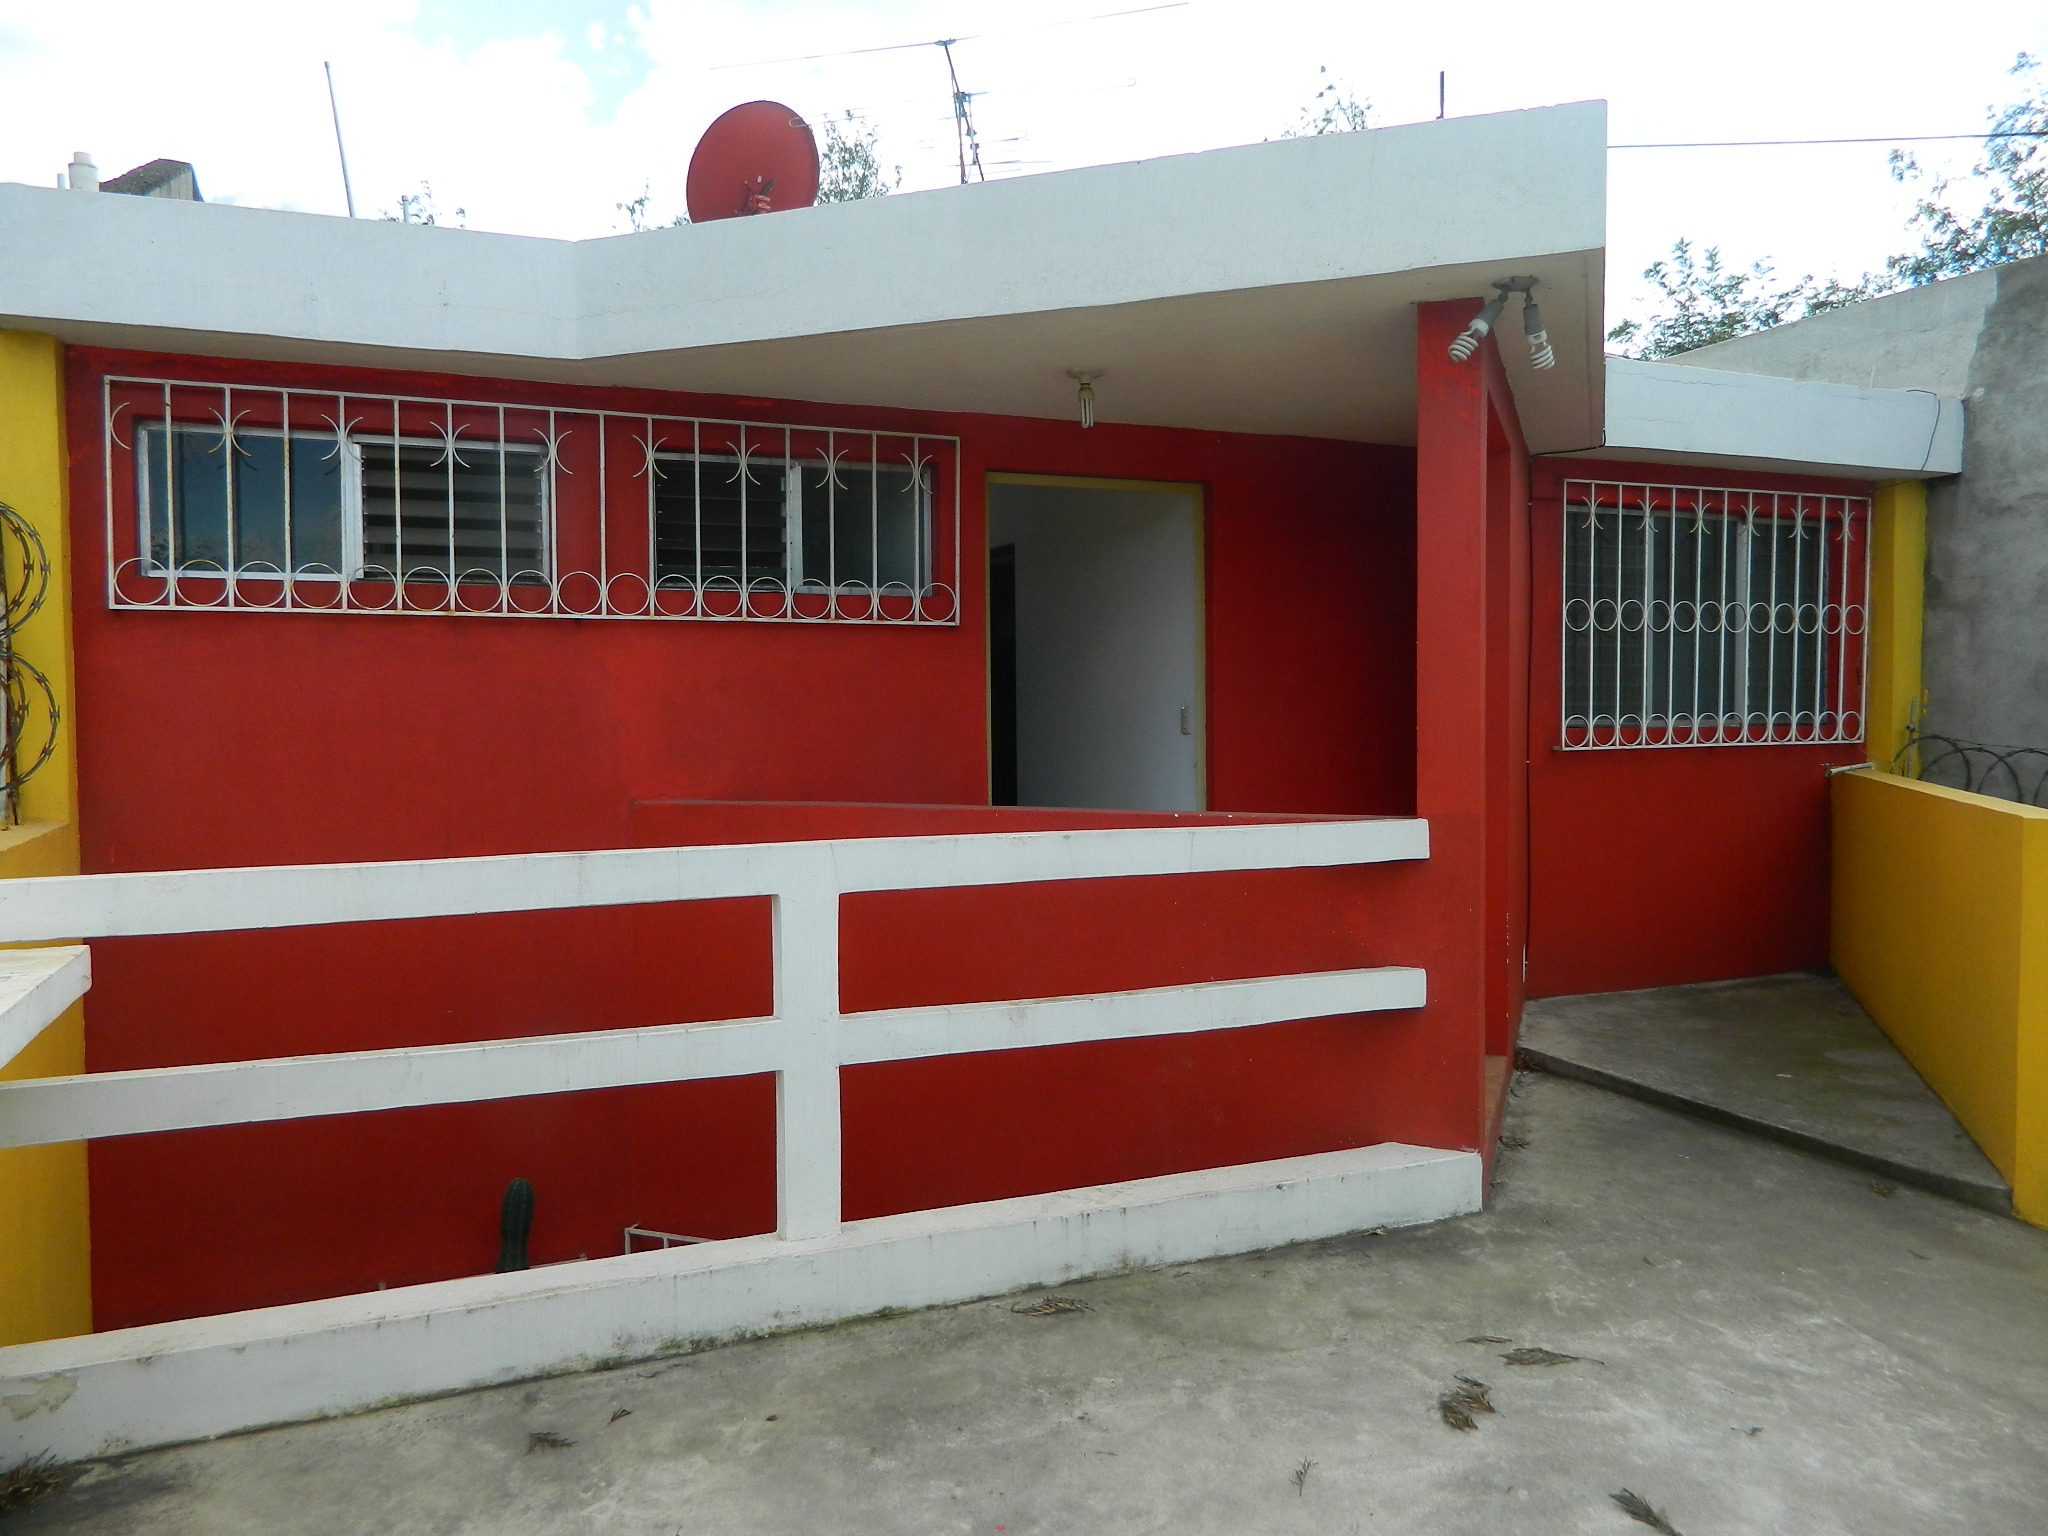 2062 HOUSE FOR SALE IN A COMPLEX HERMANO PEDRO. CIUDAD VIEJA. SACATEPEQUEZ